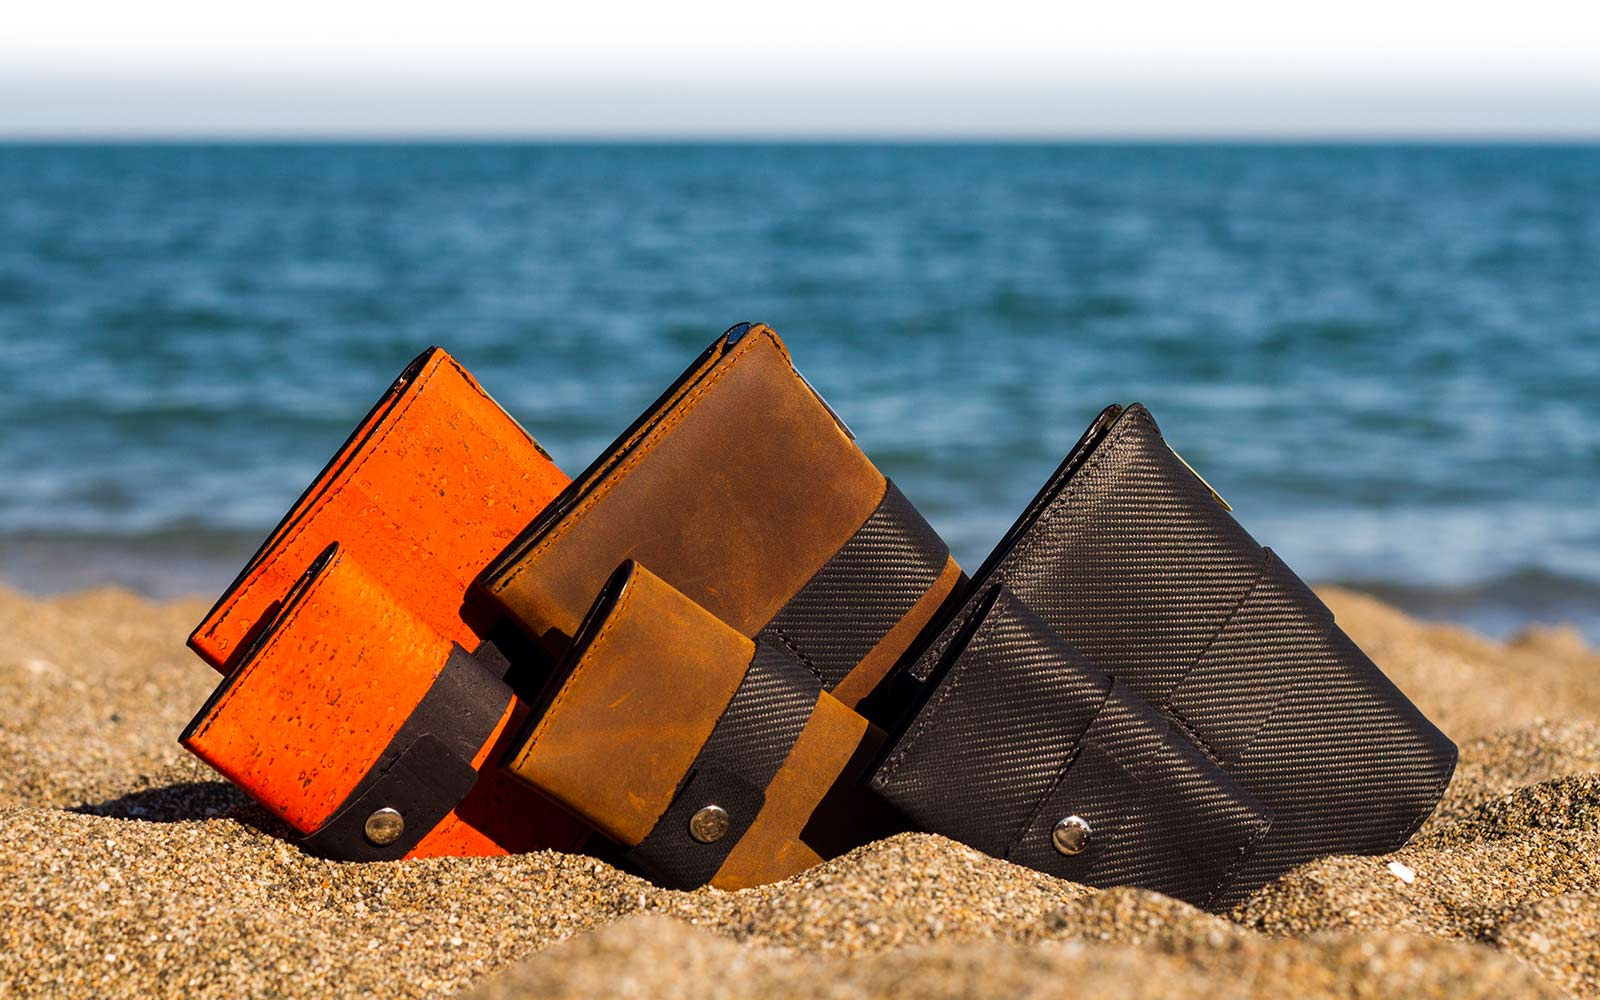 Traveller and Tasca wallets, black, brown and orange, on beach